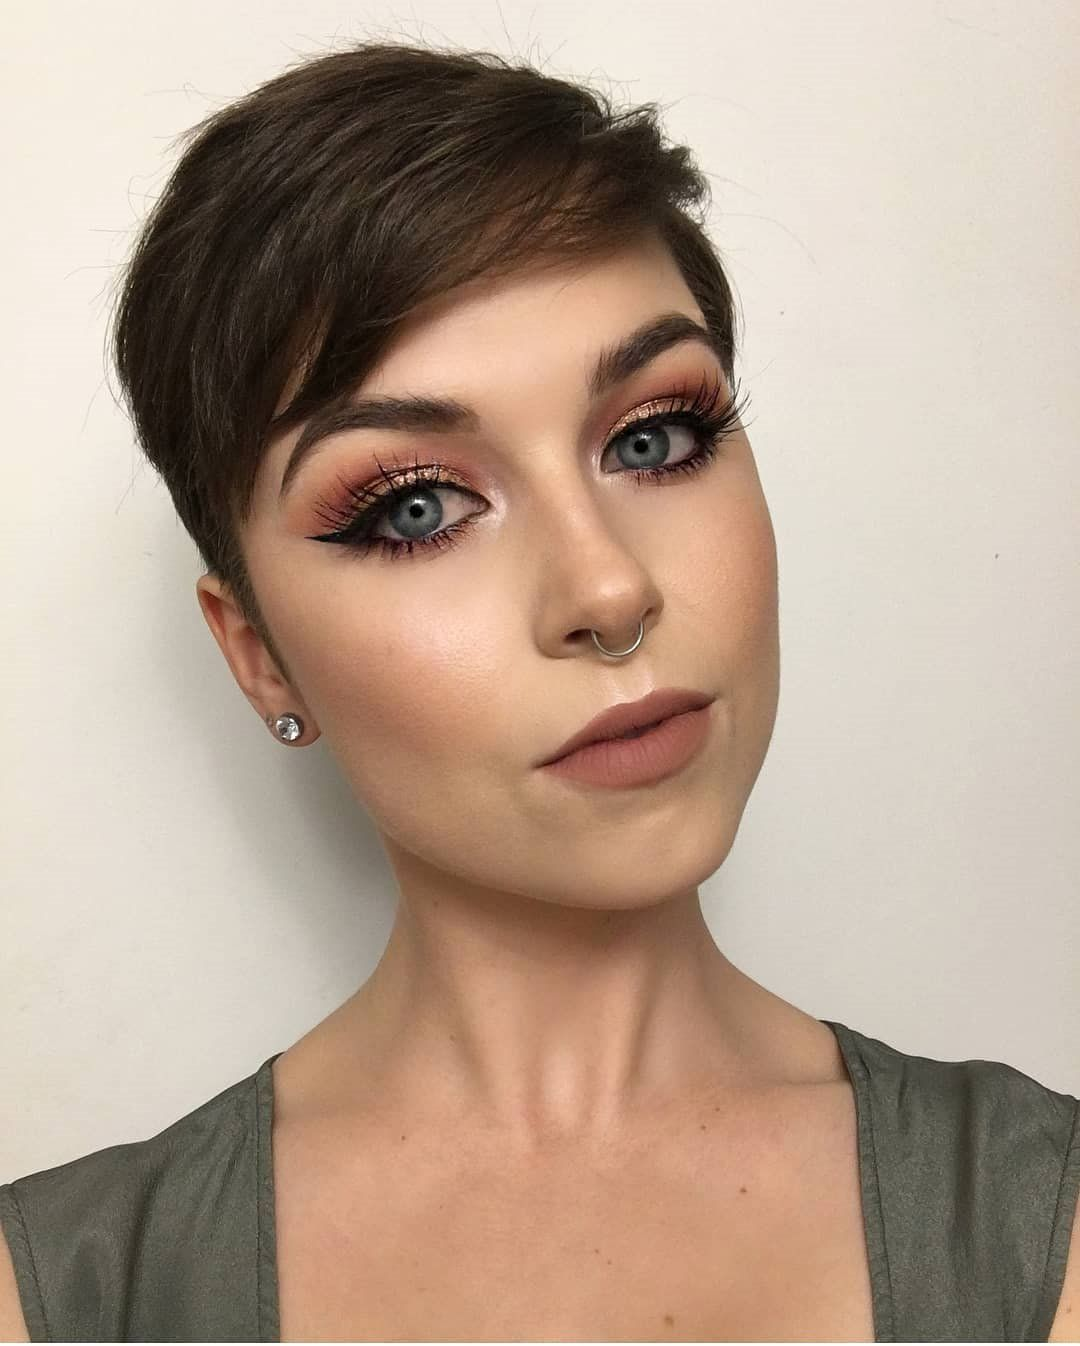 Short Hairstyles for Prom And Stylish 2019 - Styles Art | Short hair styles, Prom hairstyles for ...